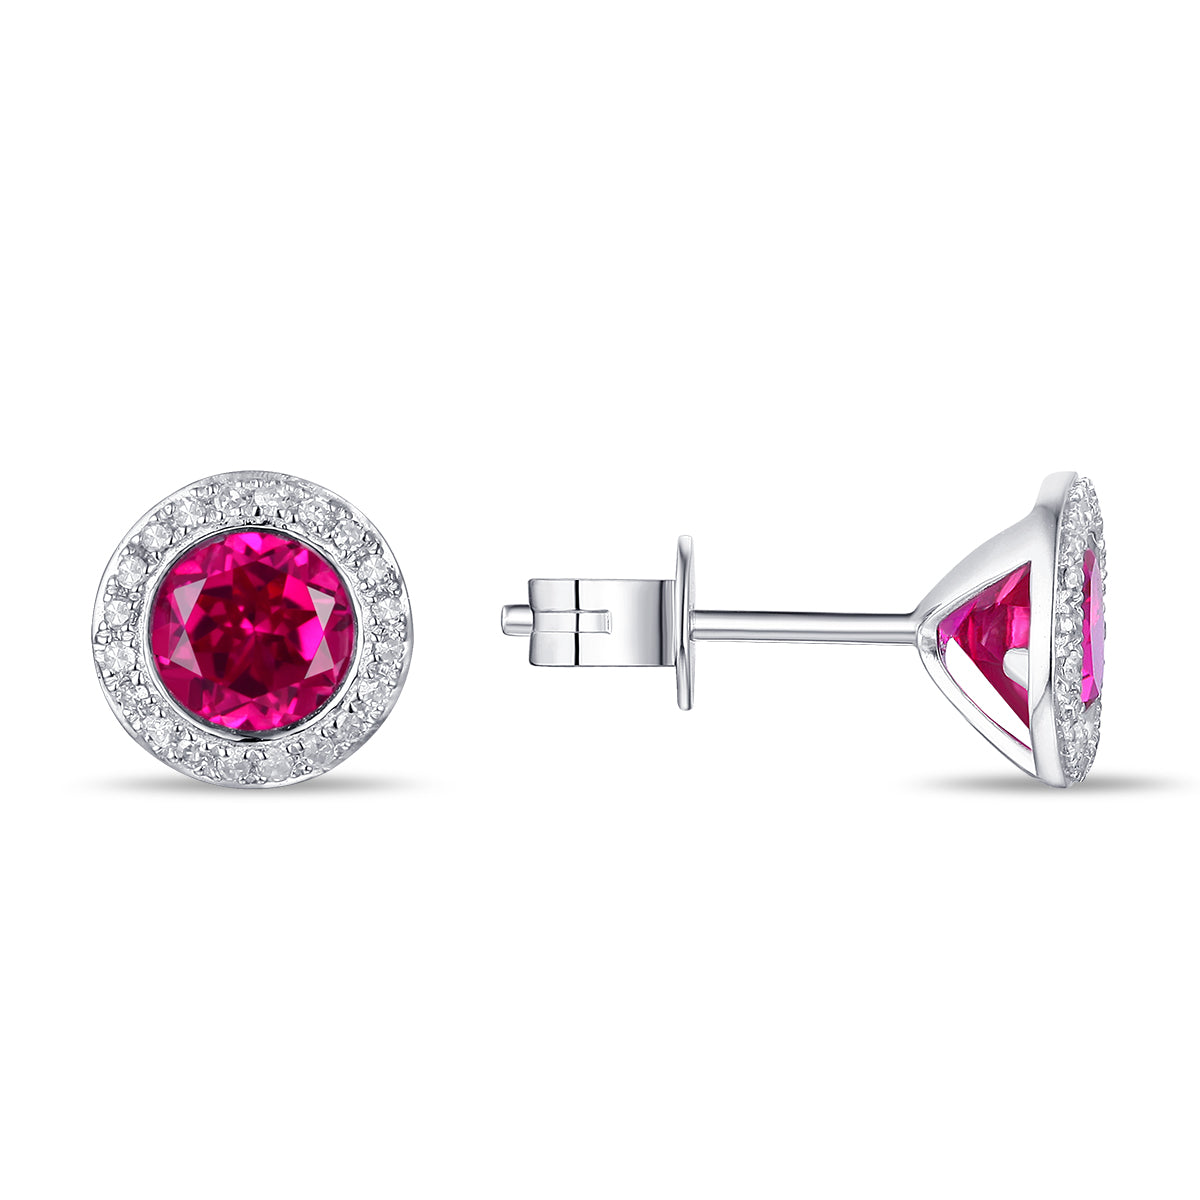 White Gold Red Corundum and Diamonds Fashion Earrings